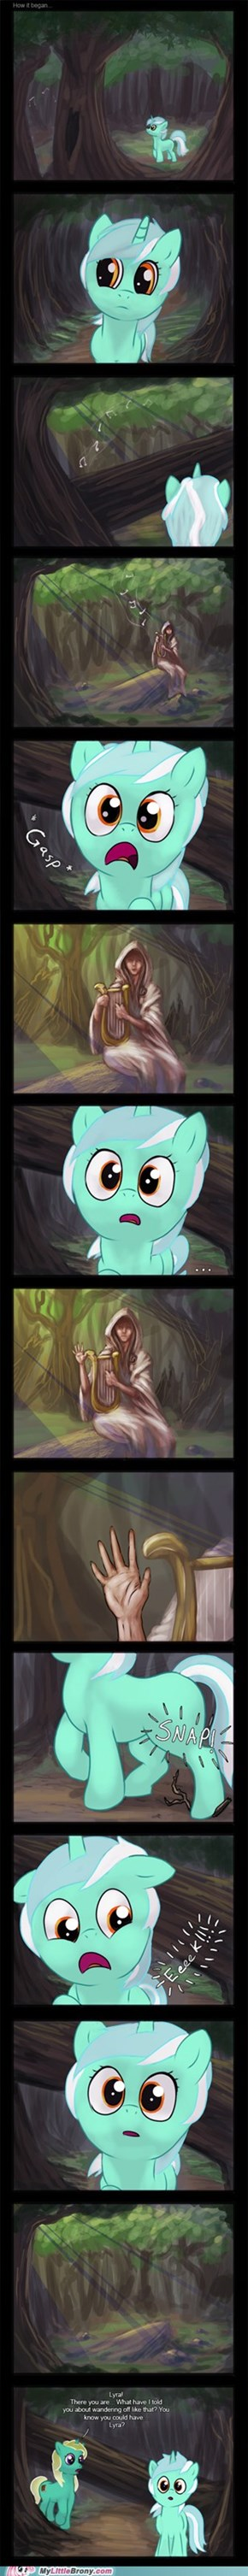 Lyra and the Everfree Sage